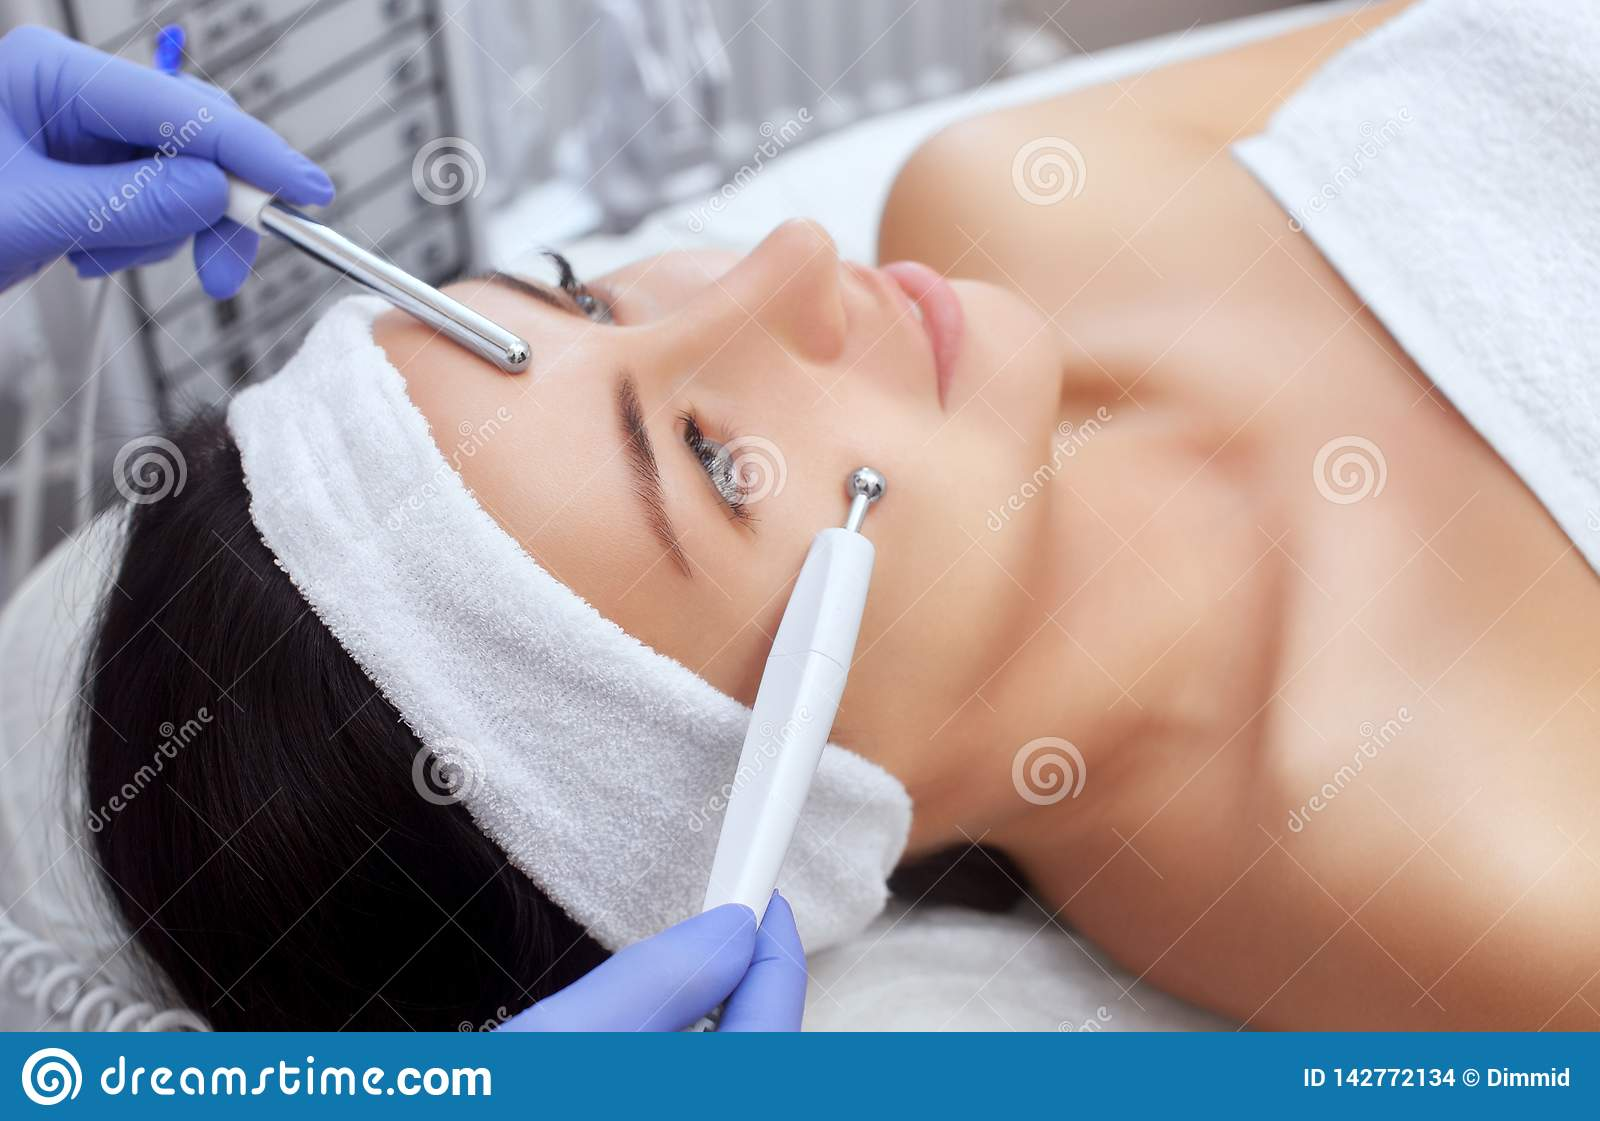 The cosmetologist makes the apparatus a procedure of Microcurrent therapy of a beautiful, young woman in a beauty salon.